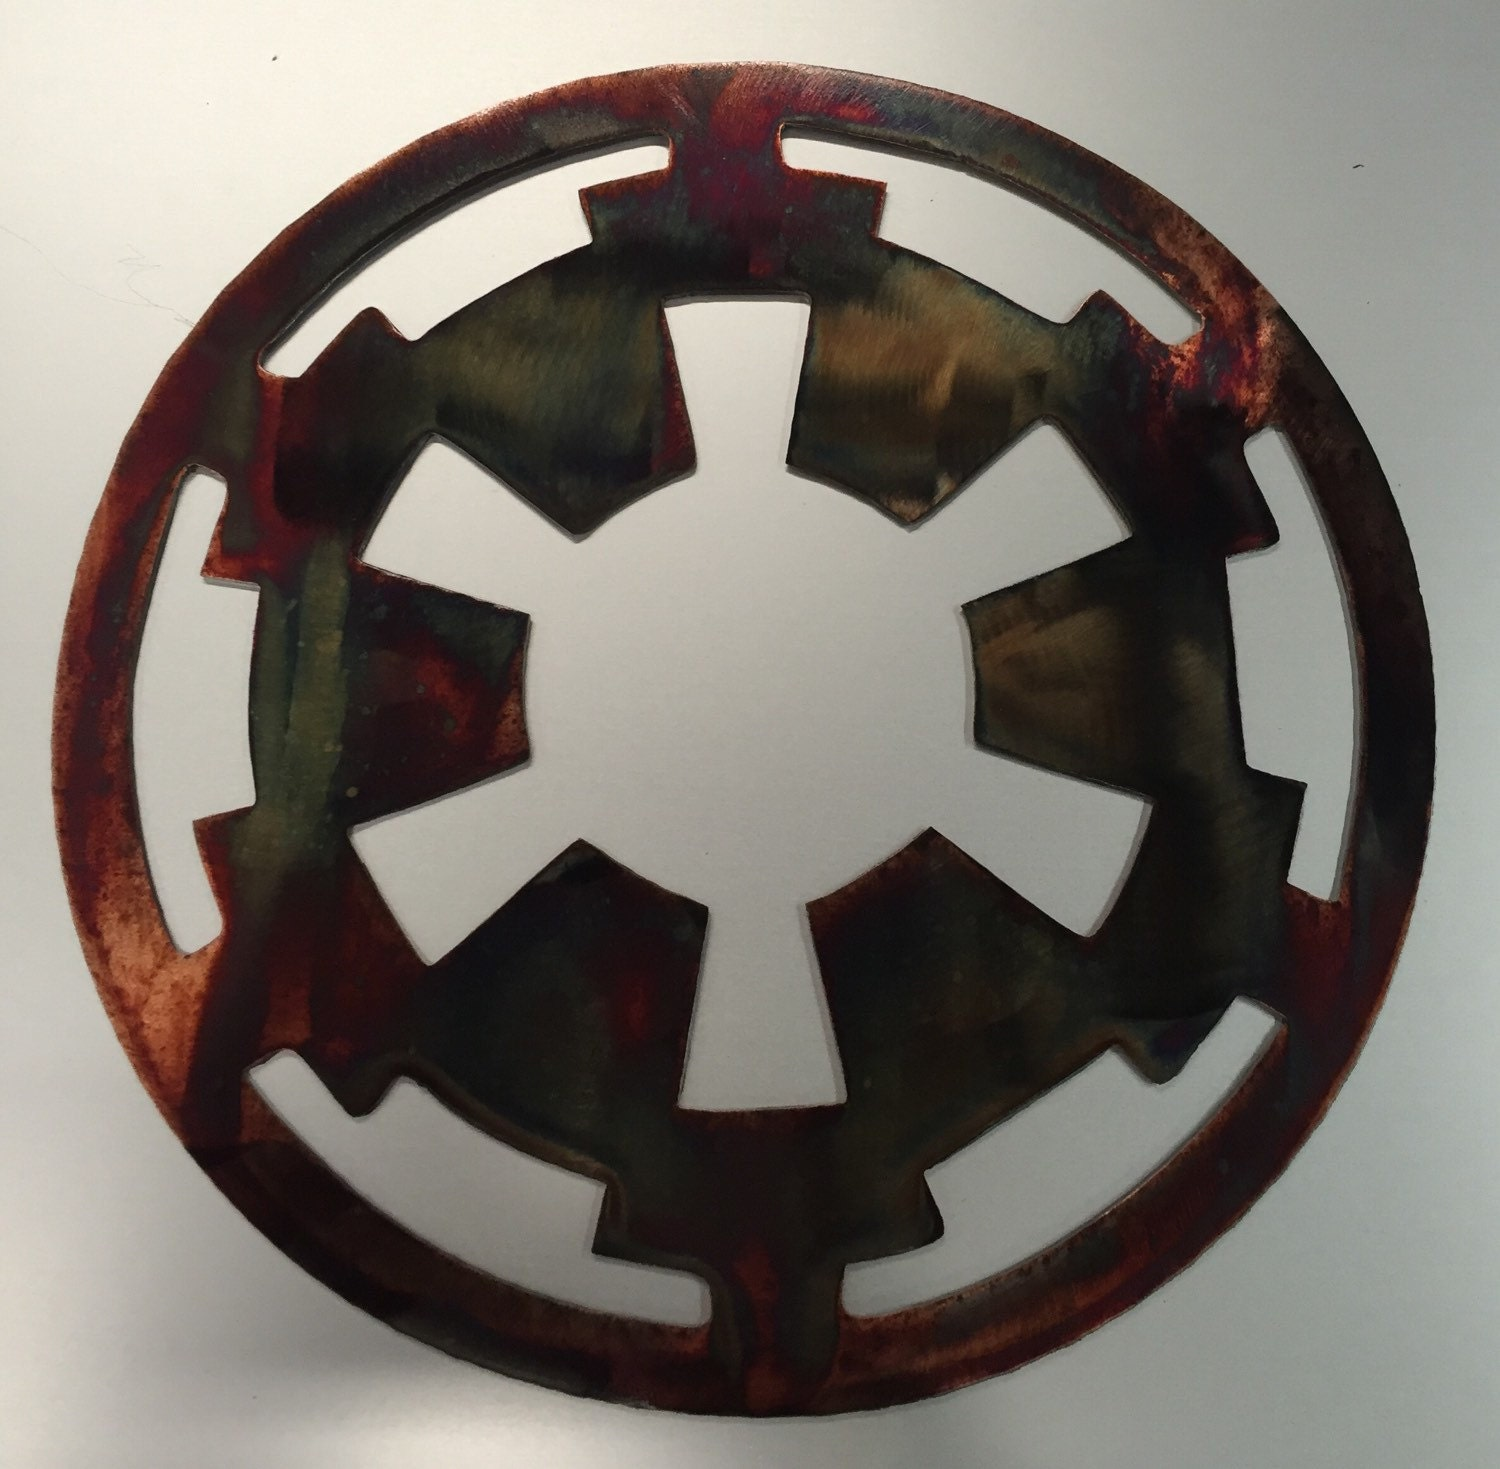 Star wars metal wall art movie imperial symbol sign decor zoom biocorpaavc Image collections